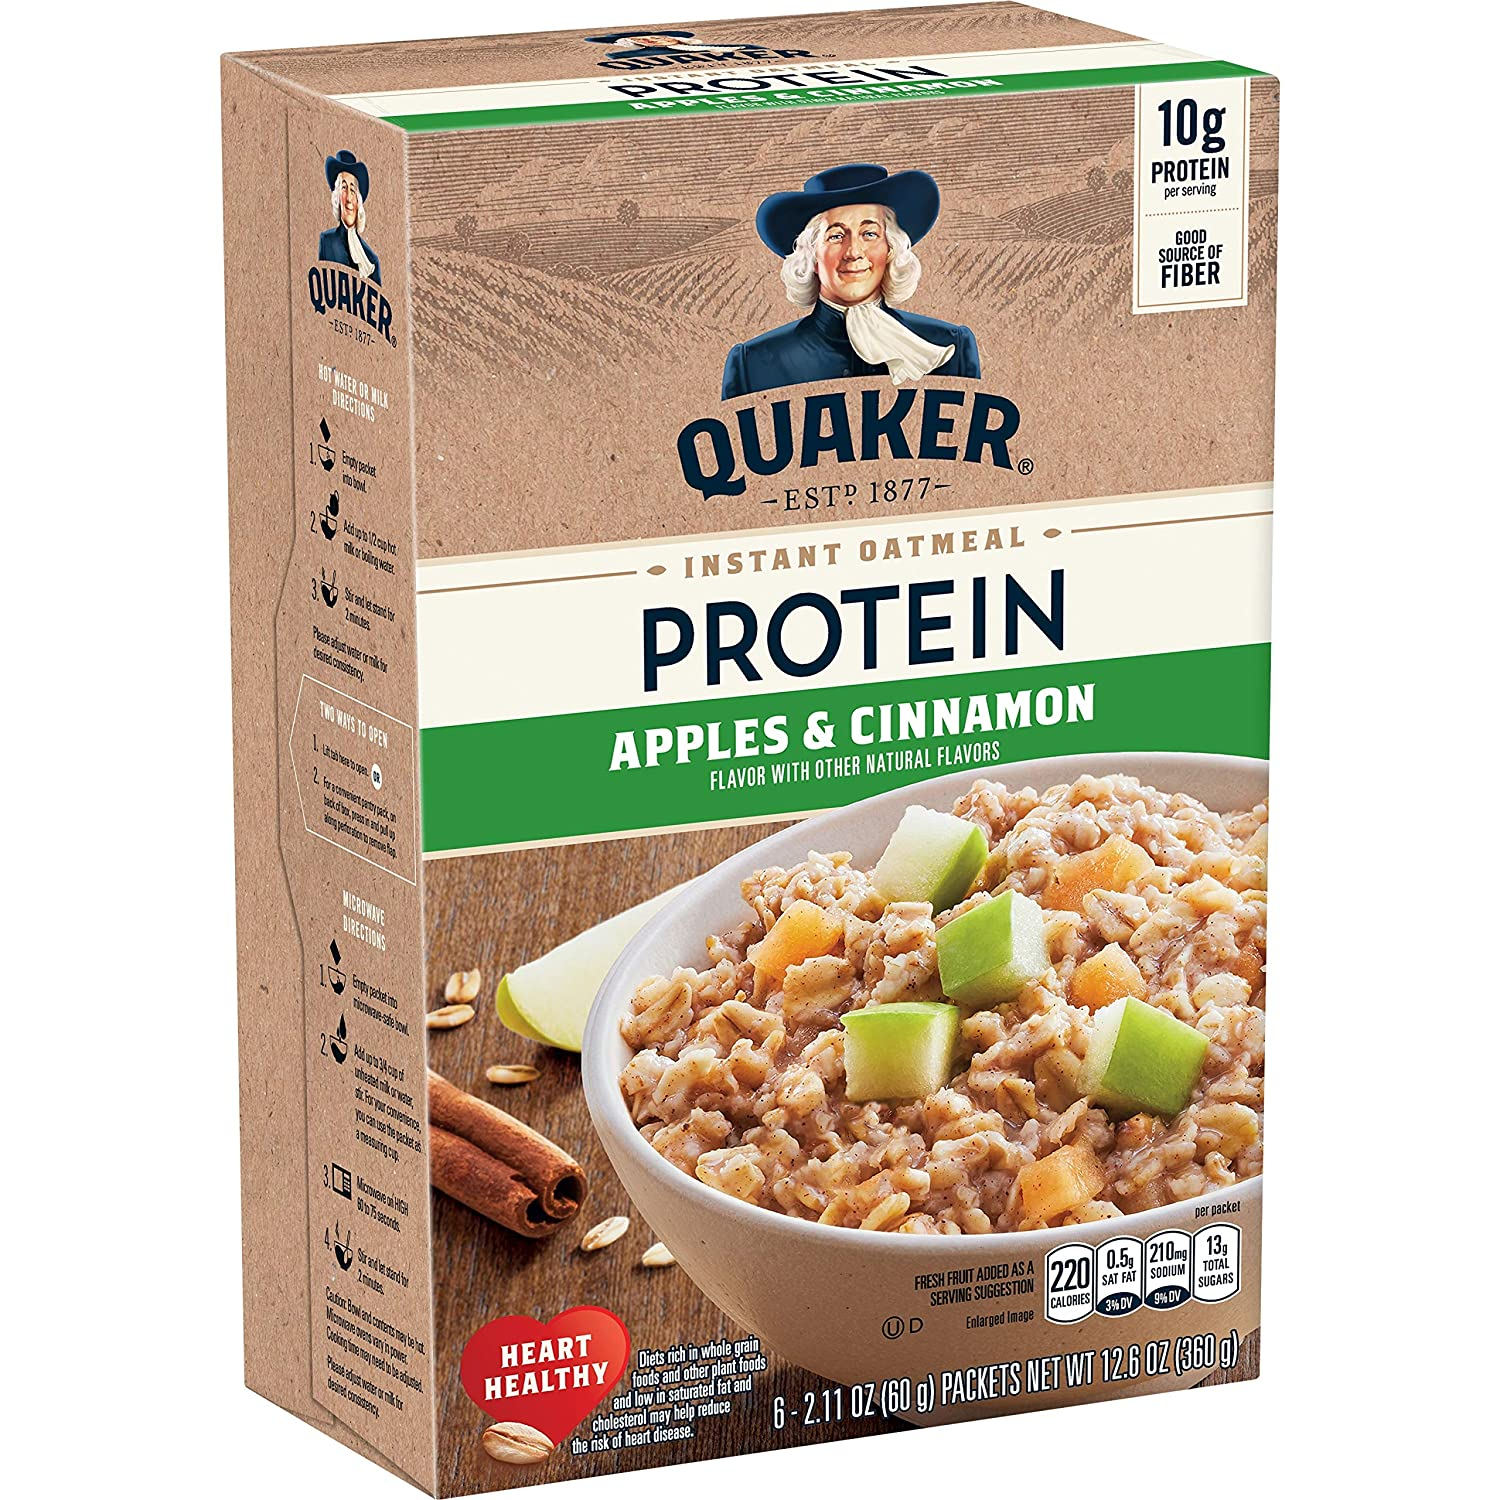 Quaker Instant Oatmeal, Protein Apple Cinnamon, 10g Protein, (36 Packets)